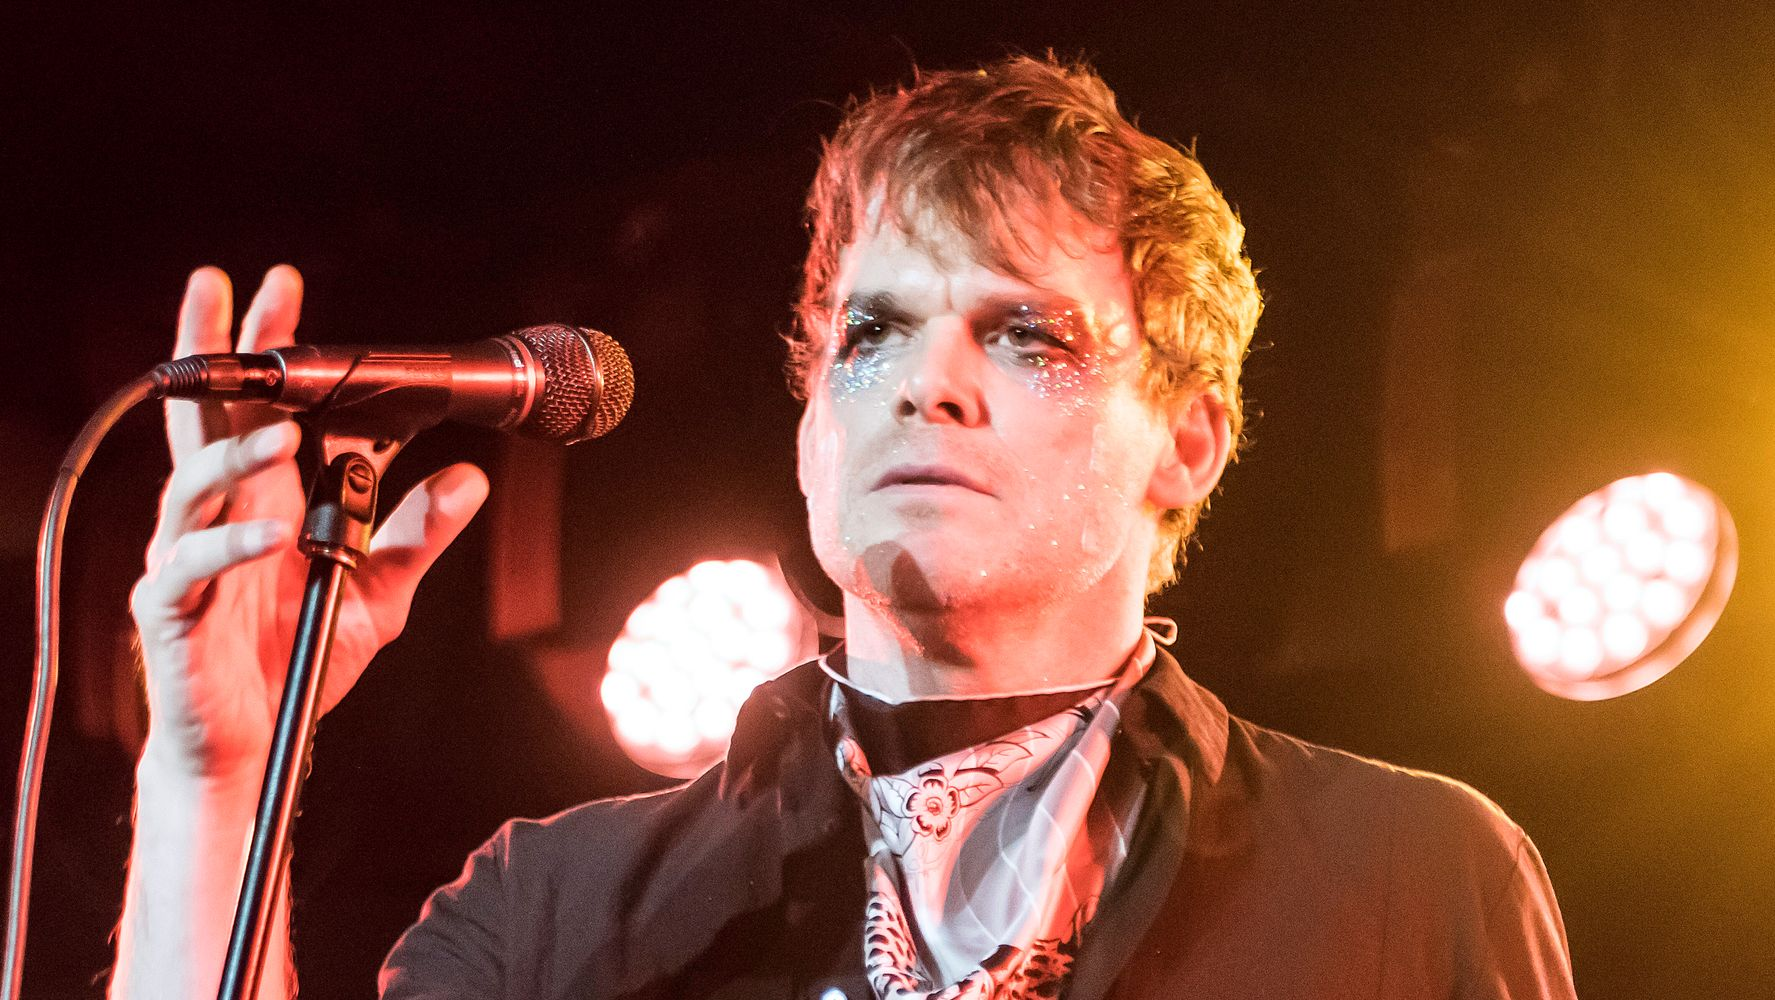 Michael C. Hall Goes Full-On Indie Rock God In New Music Video